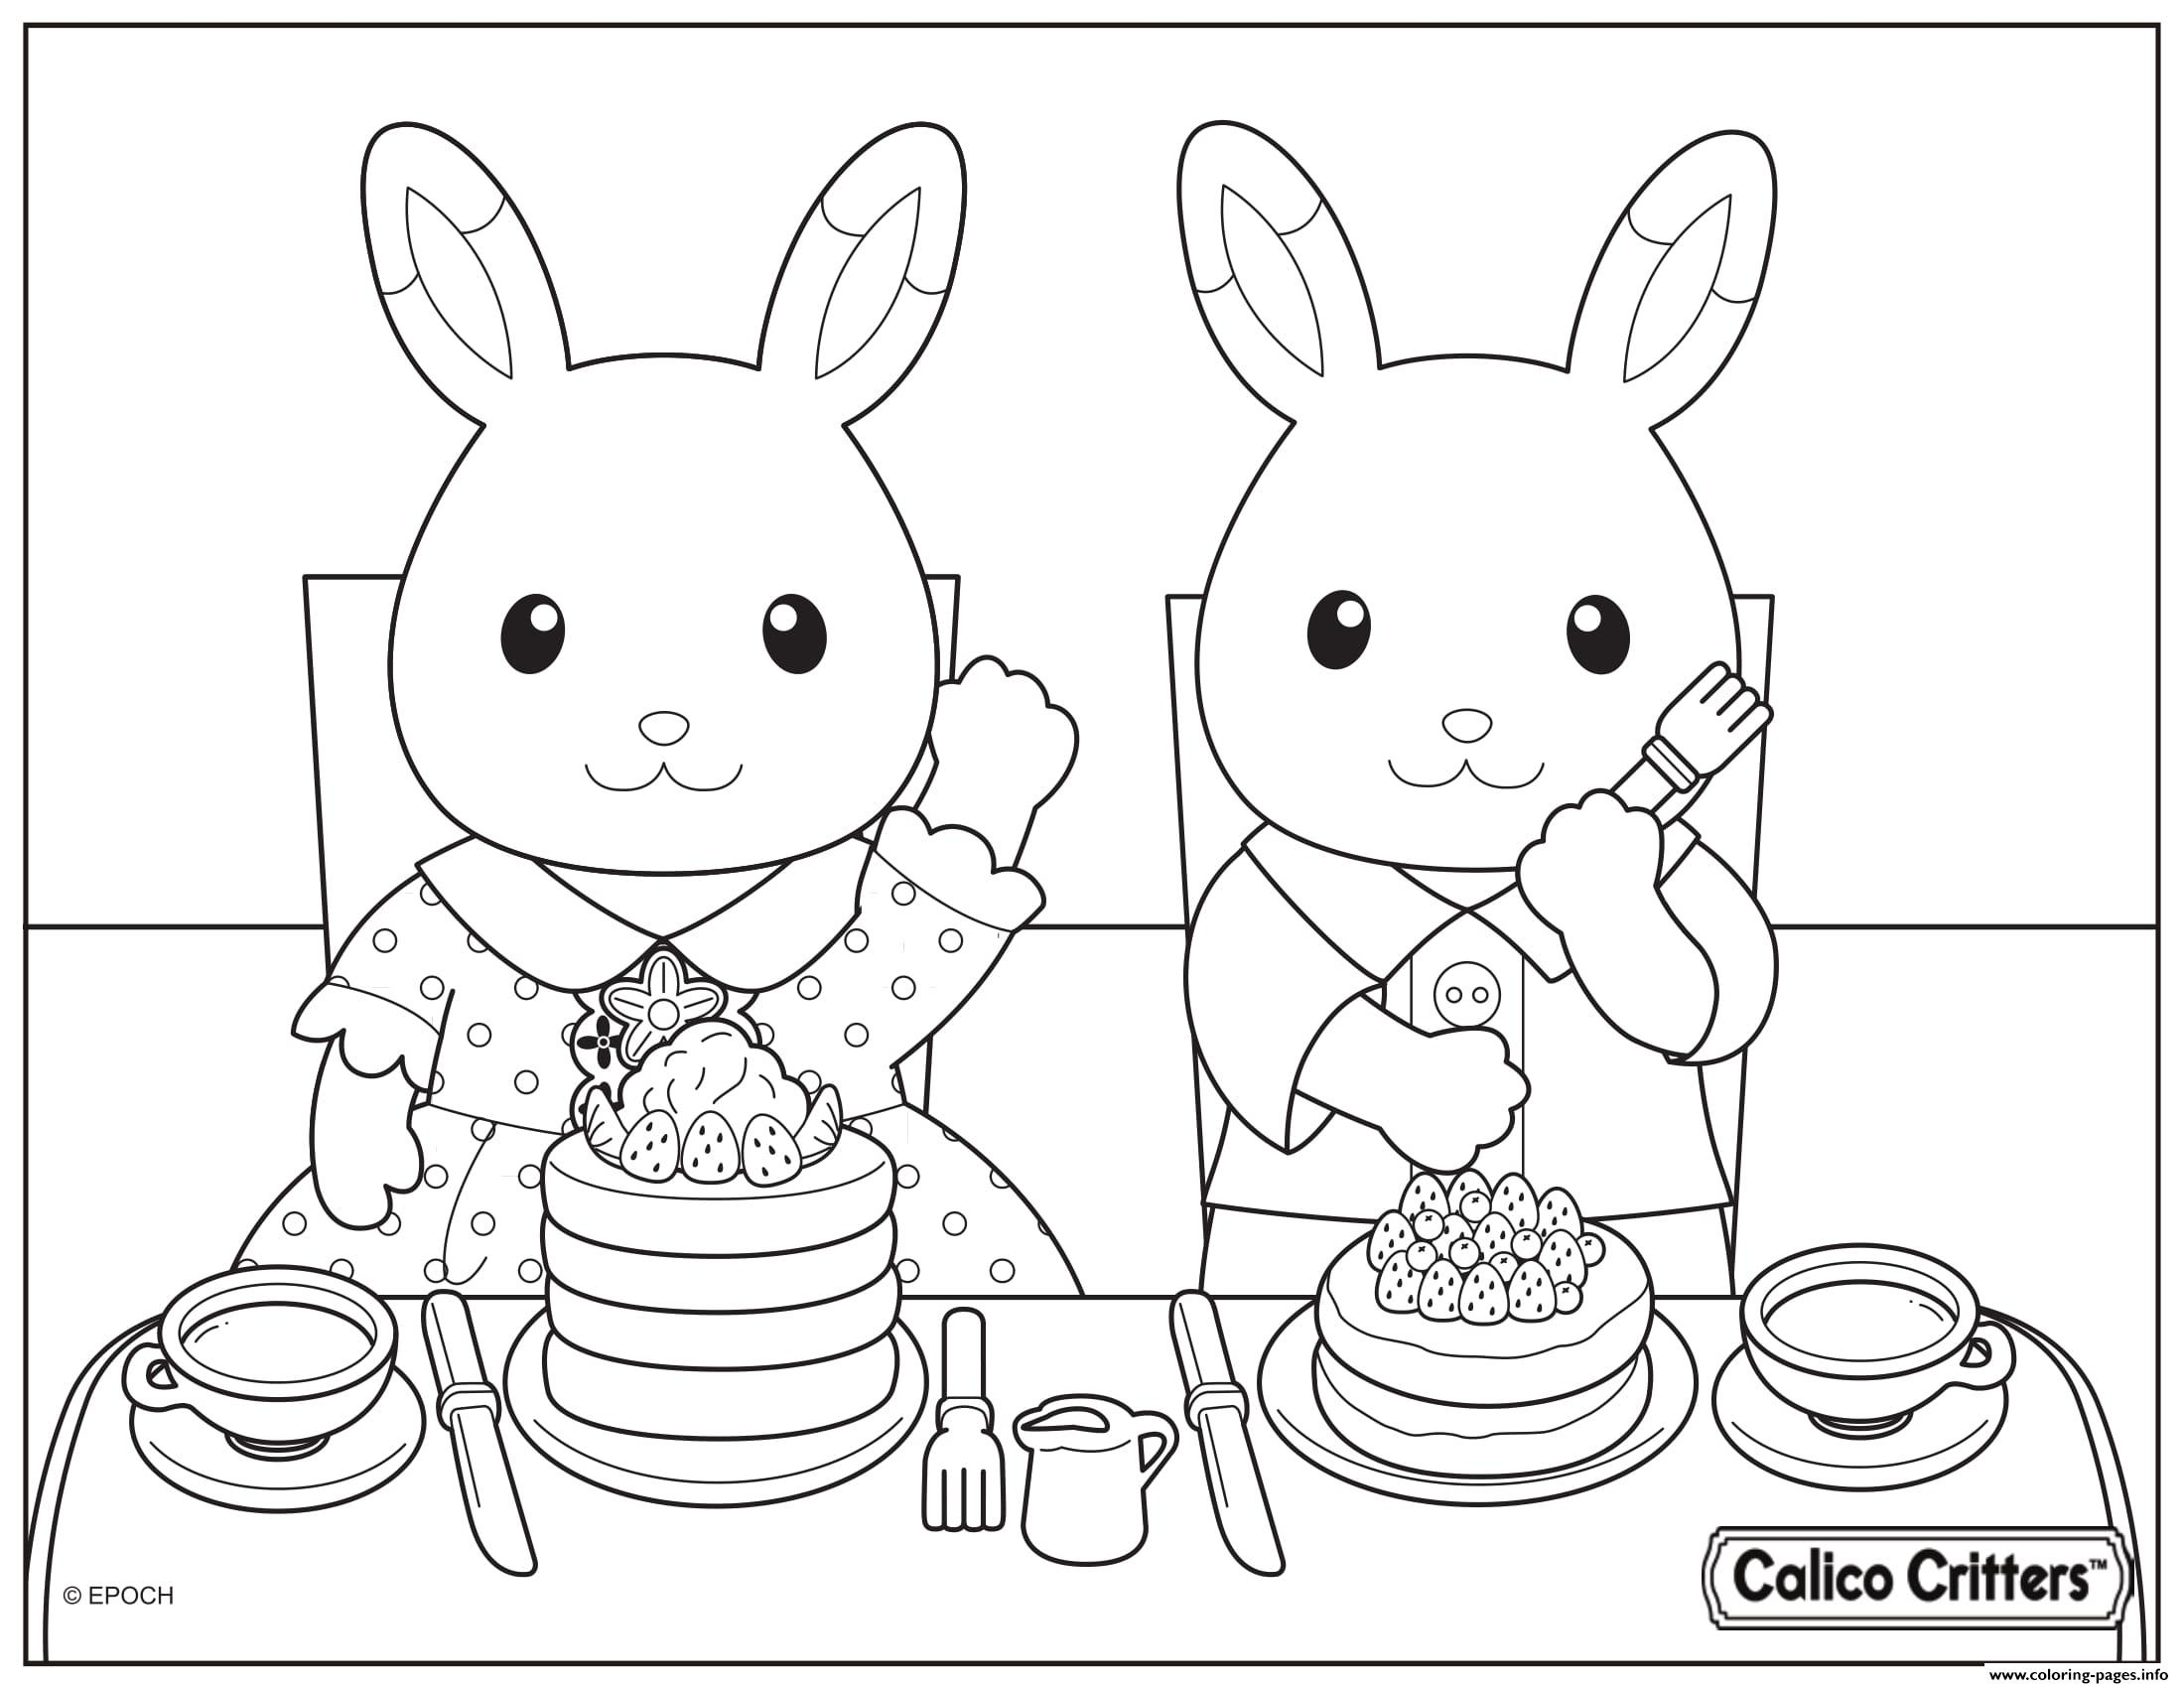 Calico Critters Eating Delicious Pancake Coloring Pages